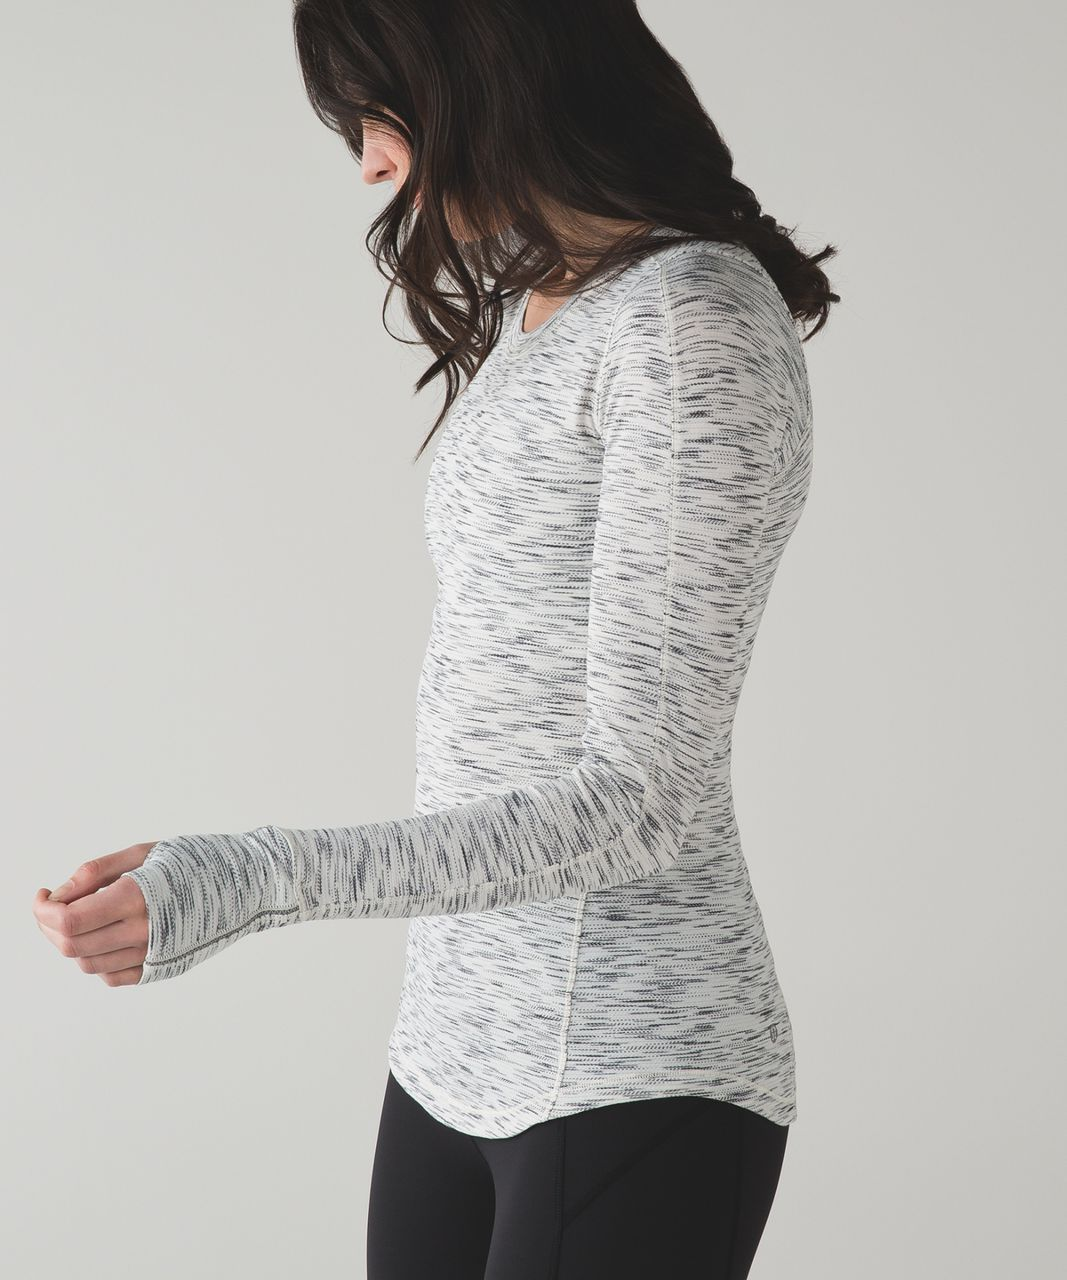 Lululemon 5 Mile Long Sleeve - Tiger Space Dye Black White